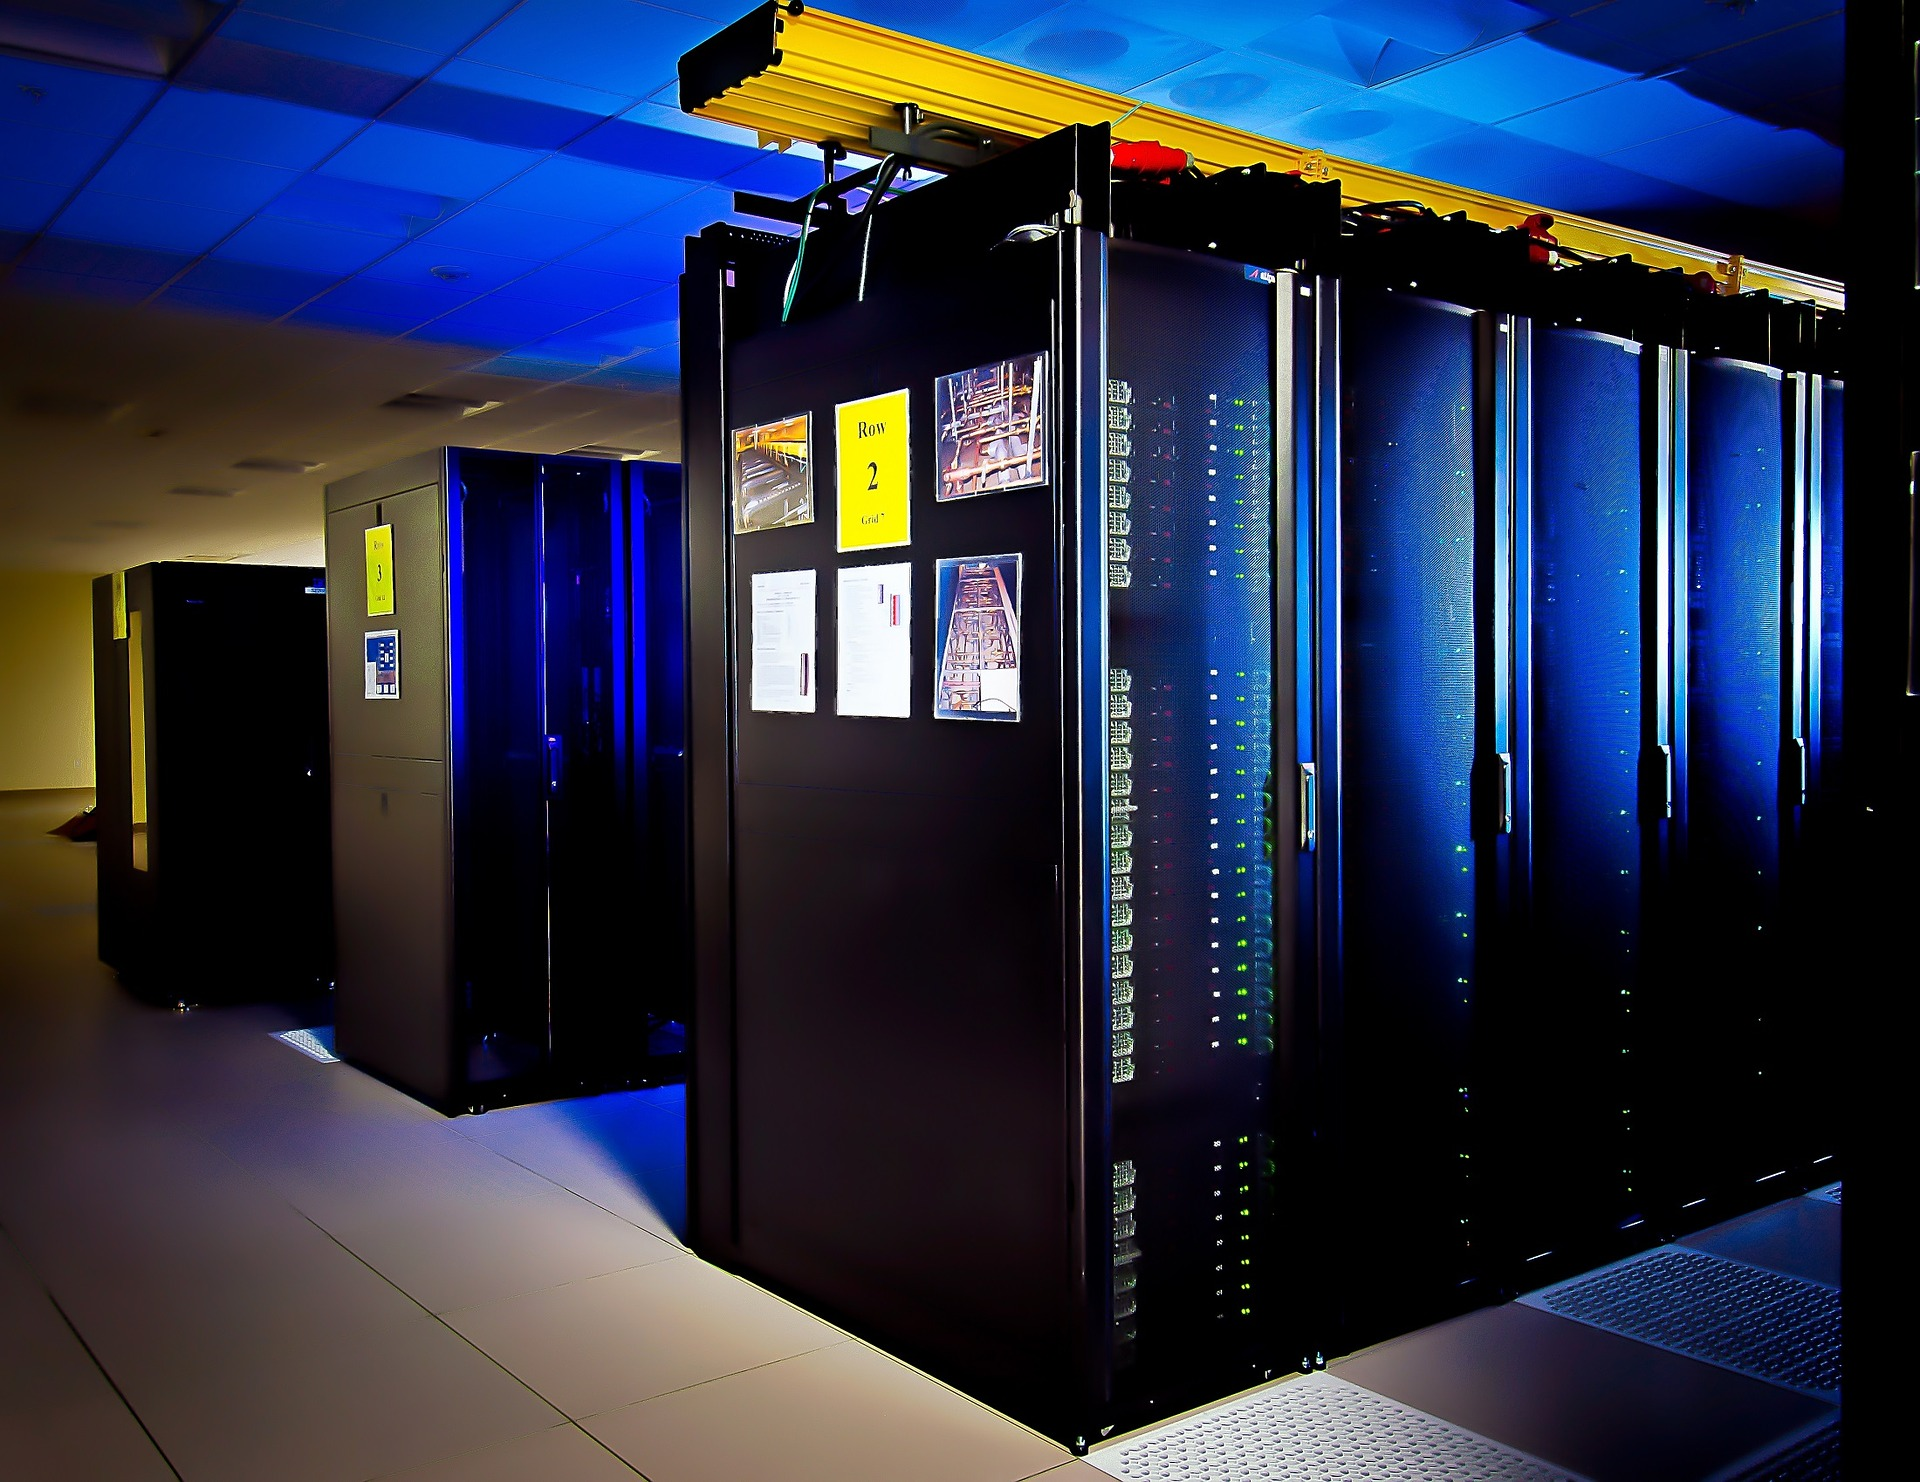 AI-Capable 'Alps' Supercomputer Set To Come Online In 2023